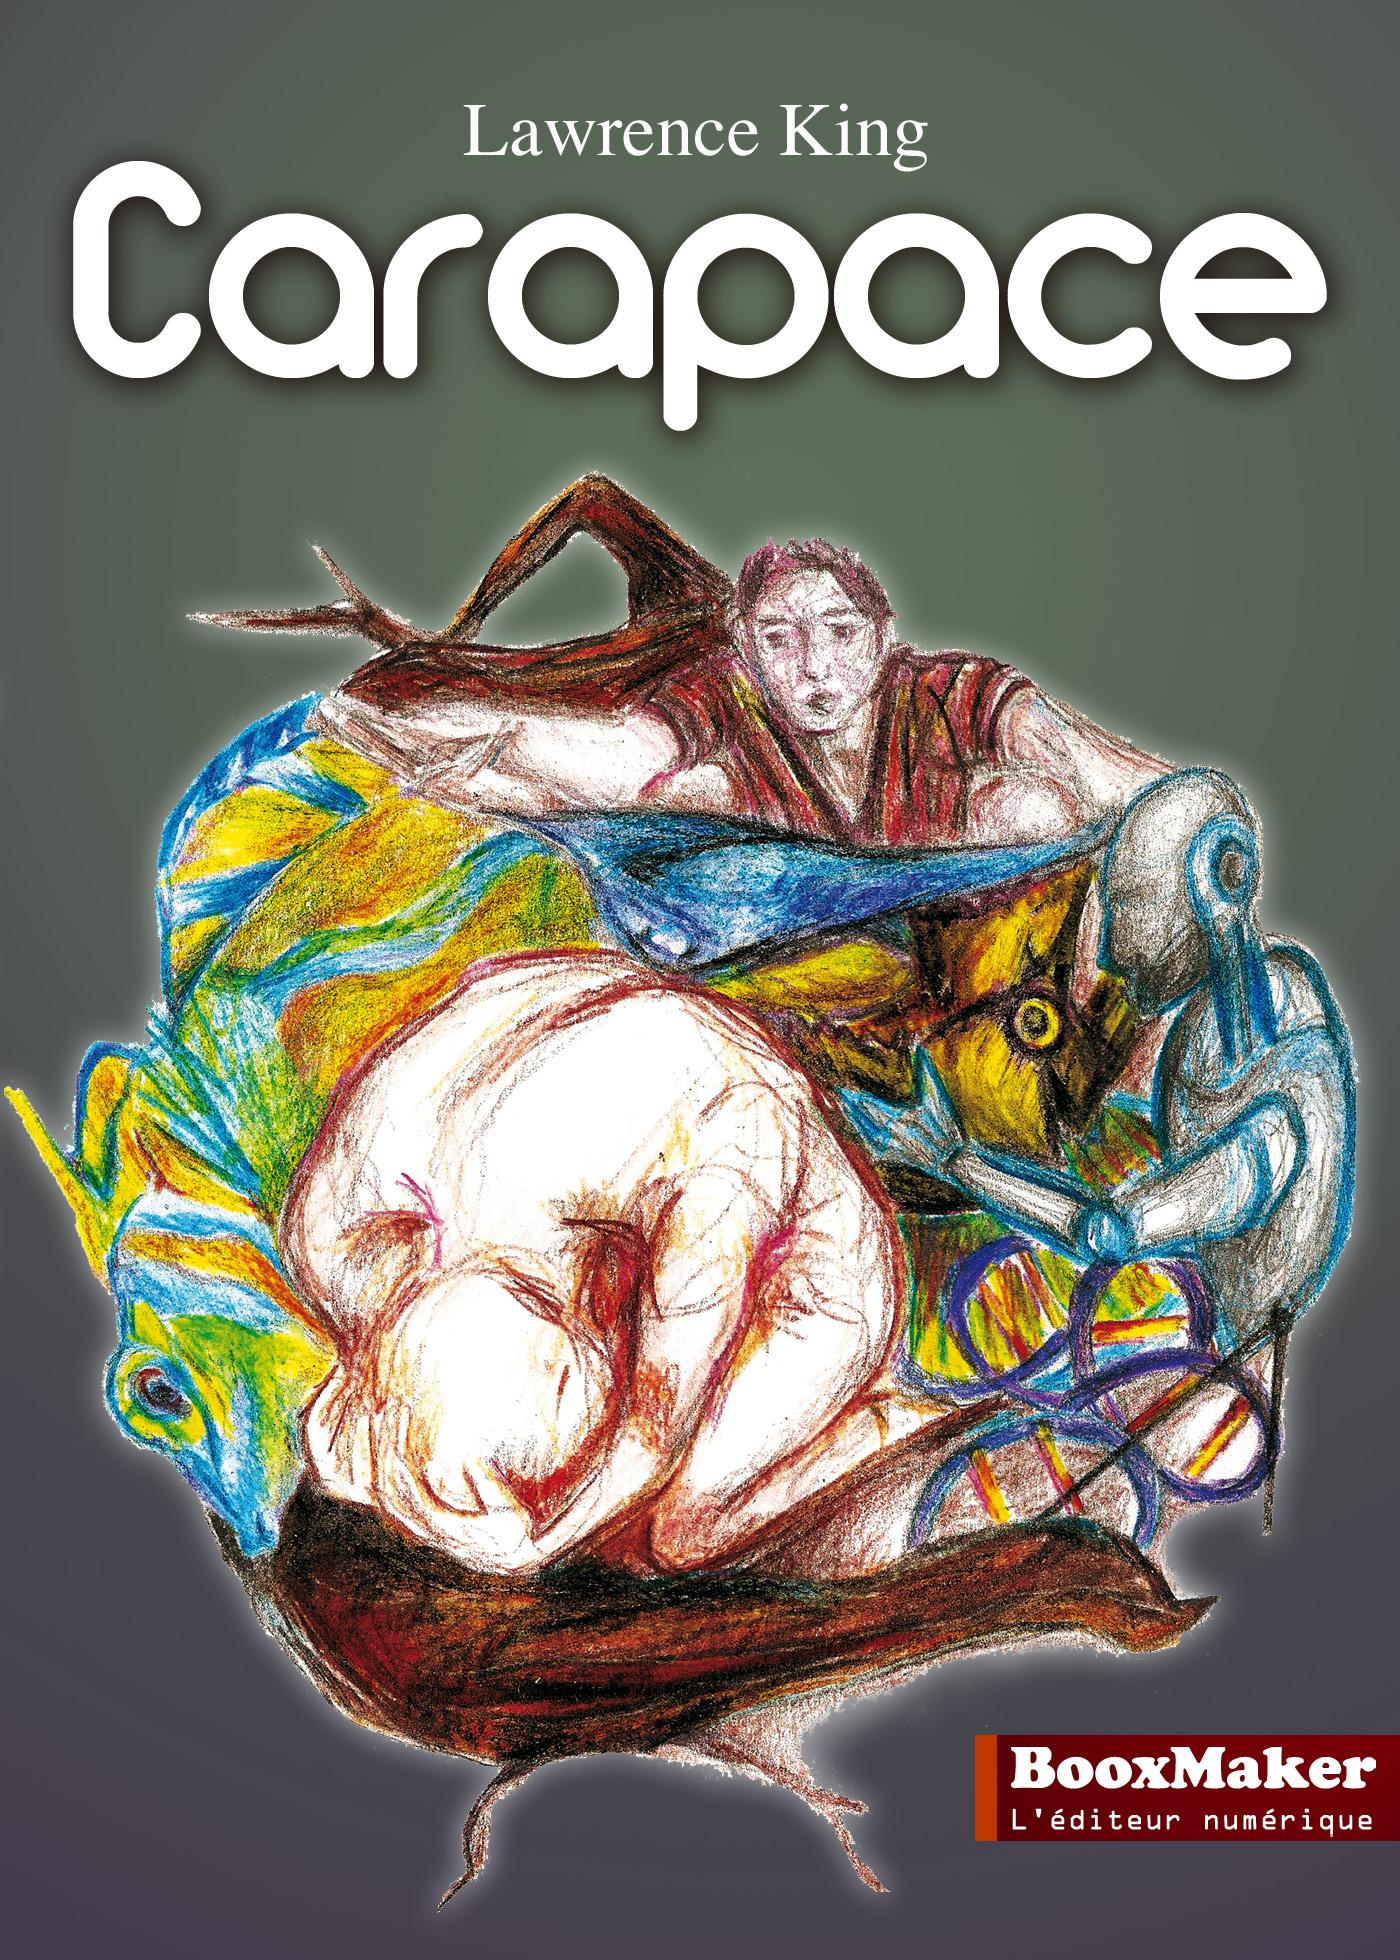 Carapace